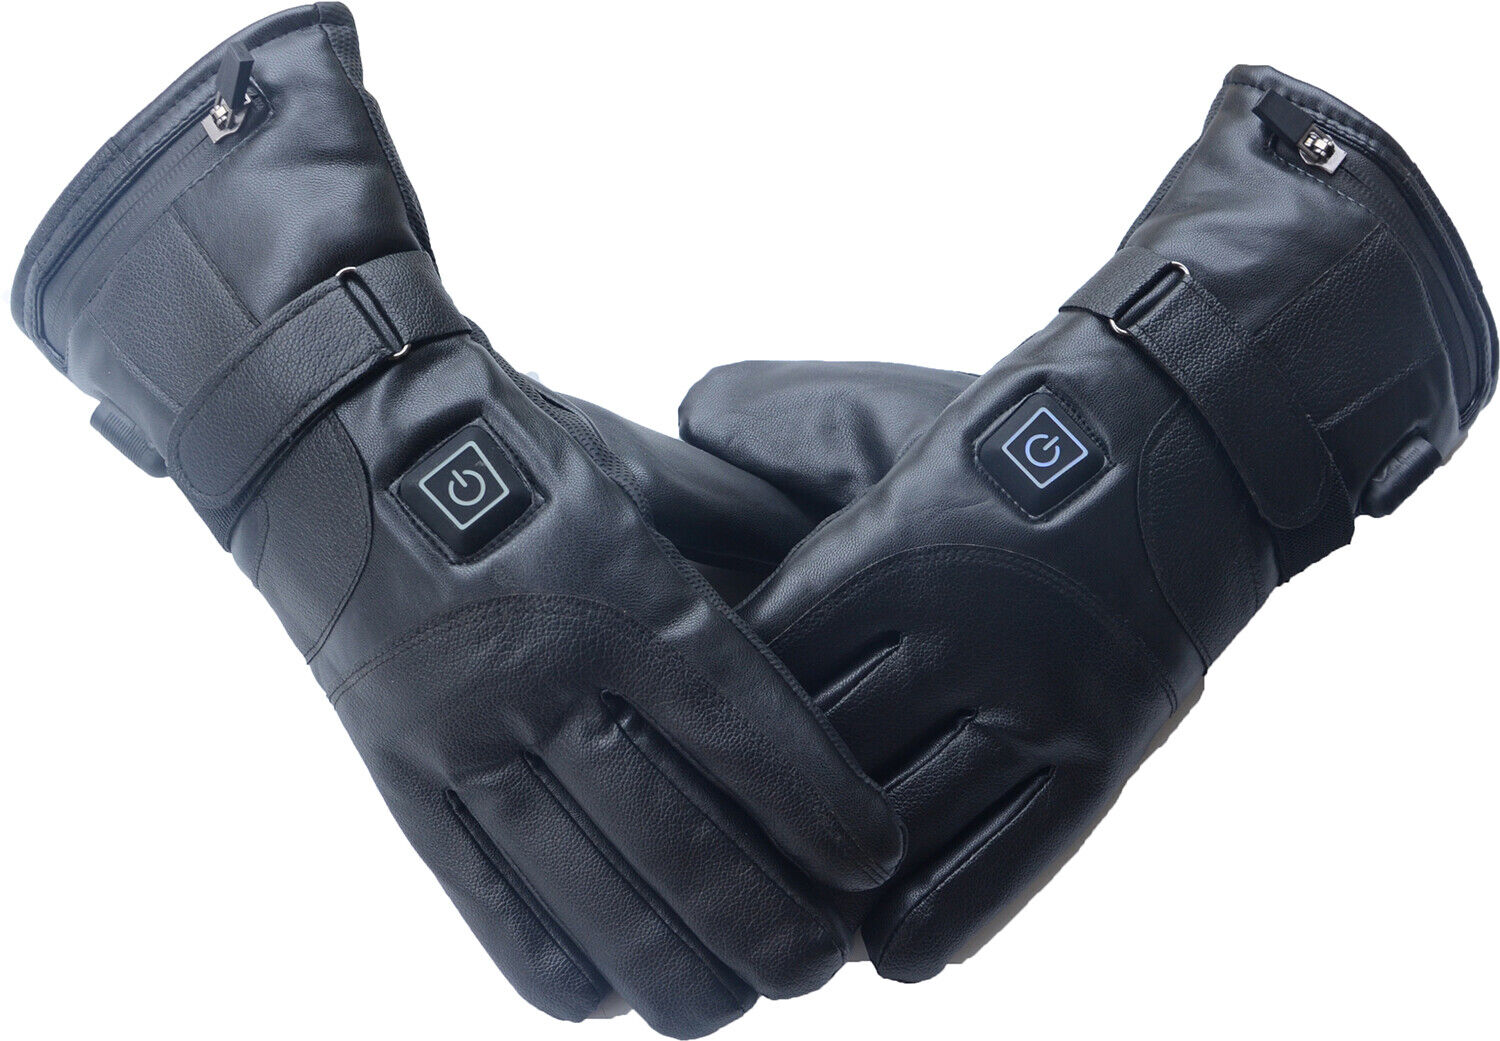 Leather Heated Gloves For Men Women Electric Hand Warmer Motocycle Ski Gloves GI - $25.99